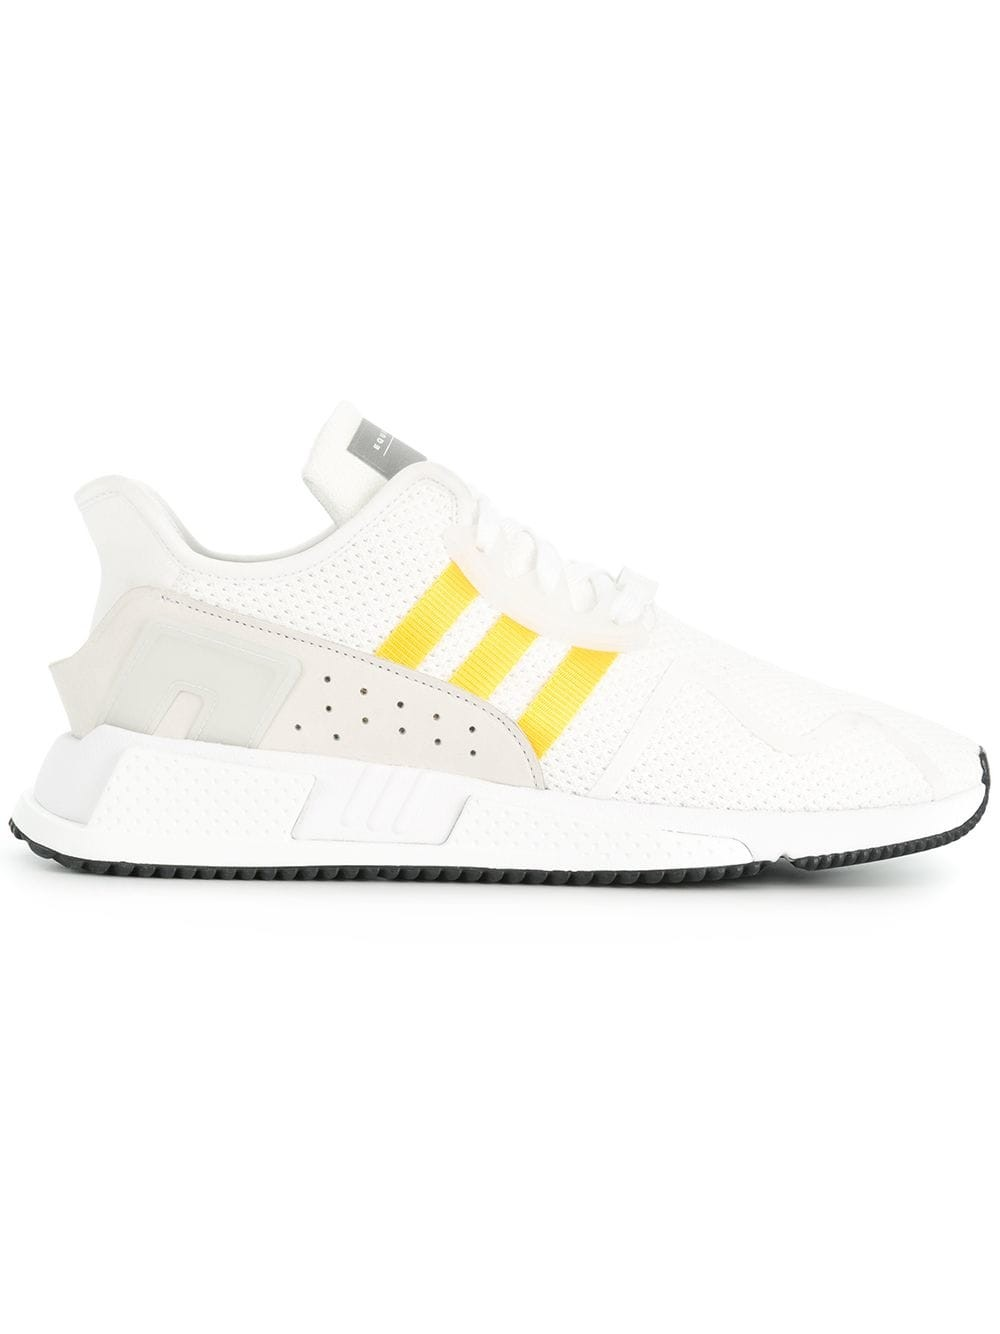 Adidas EQT Cushion ADV Jaune Stripes Pack - CQ2375